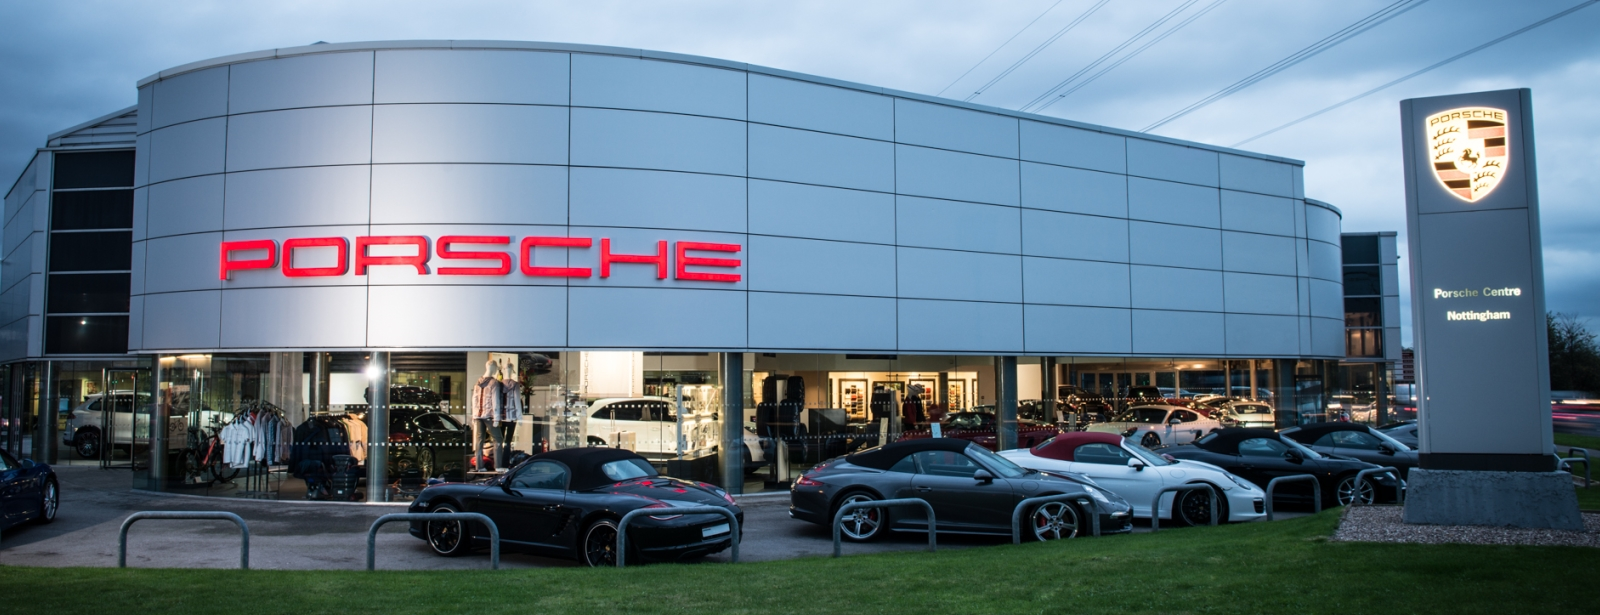 Porsche Centre Nottingham